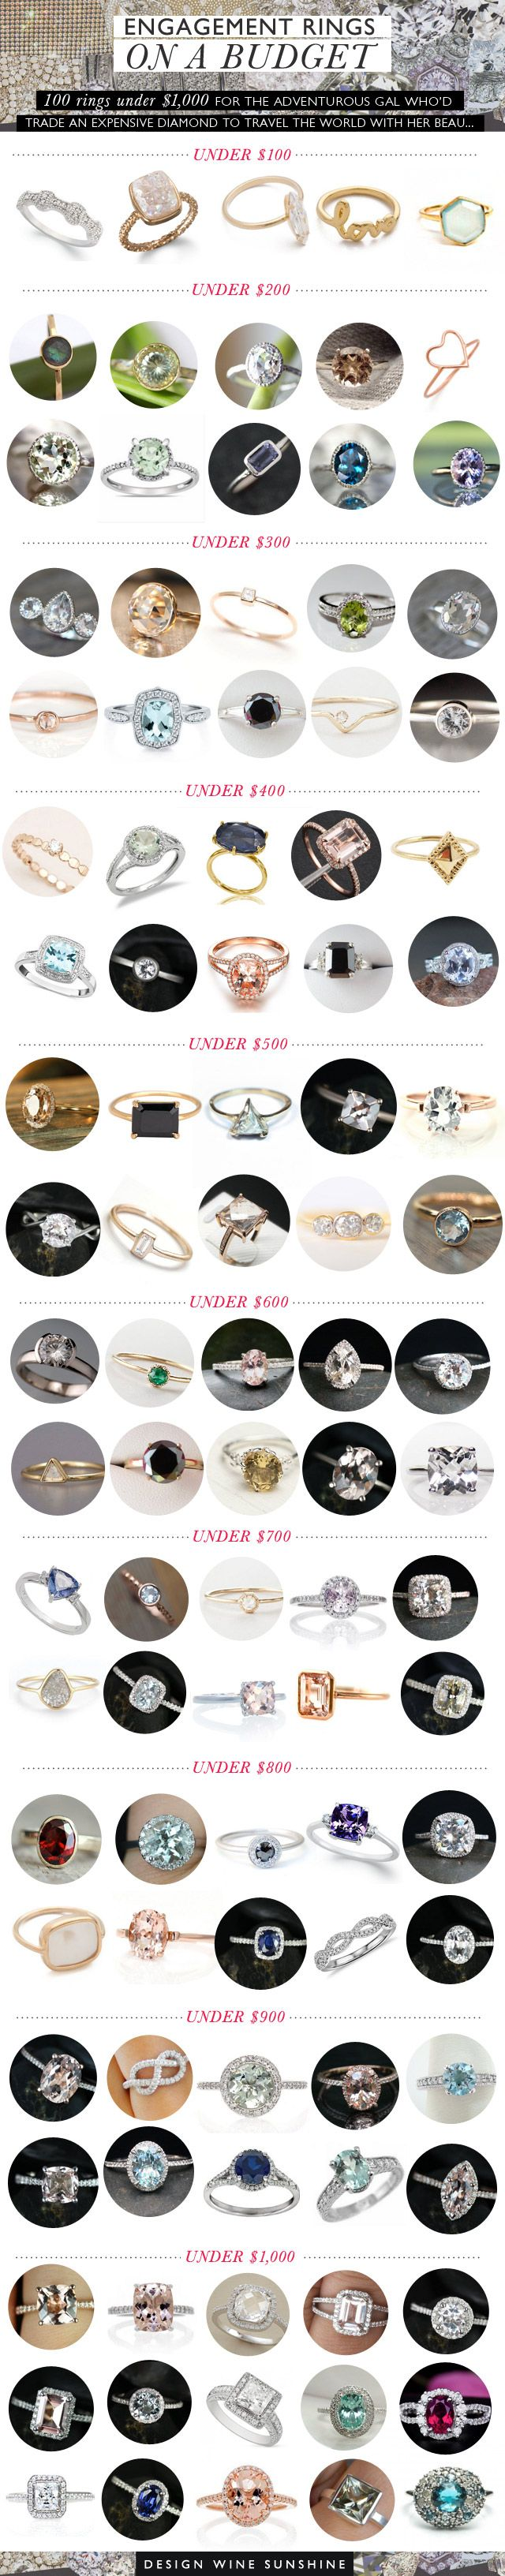 affordable engagement rings wedding rings under 25 Best Ideas about Affordable Engagement Rings on Pinterest Engagement rings unique Wedding ring and Wedding ring designs